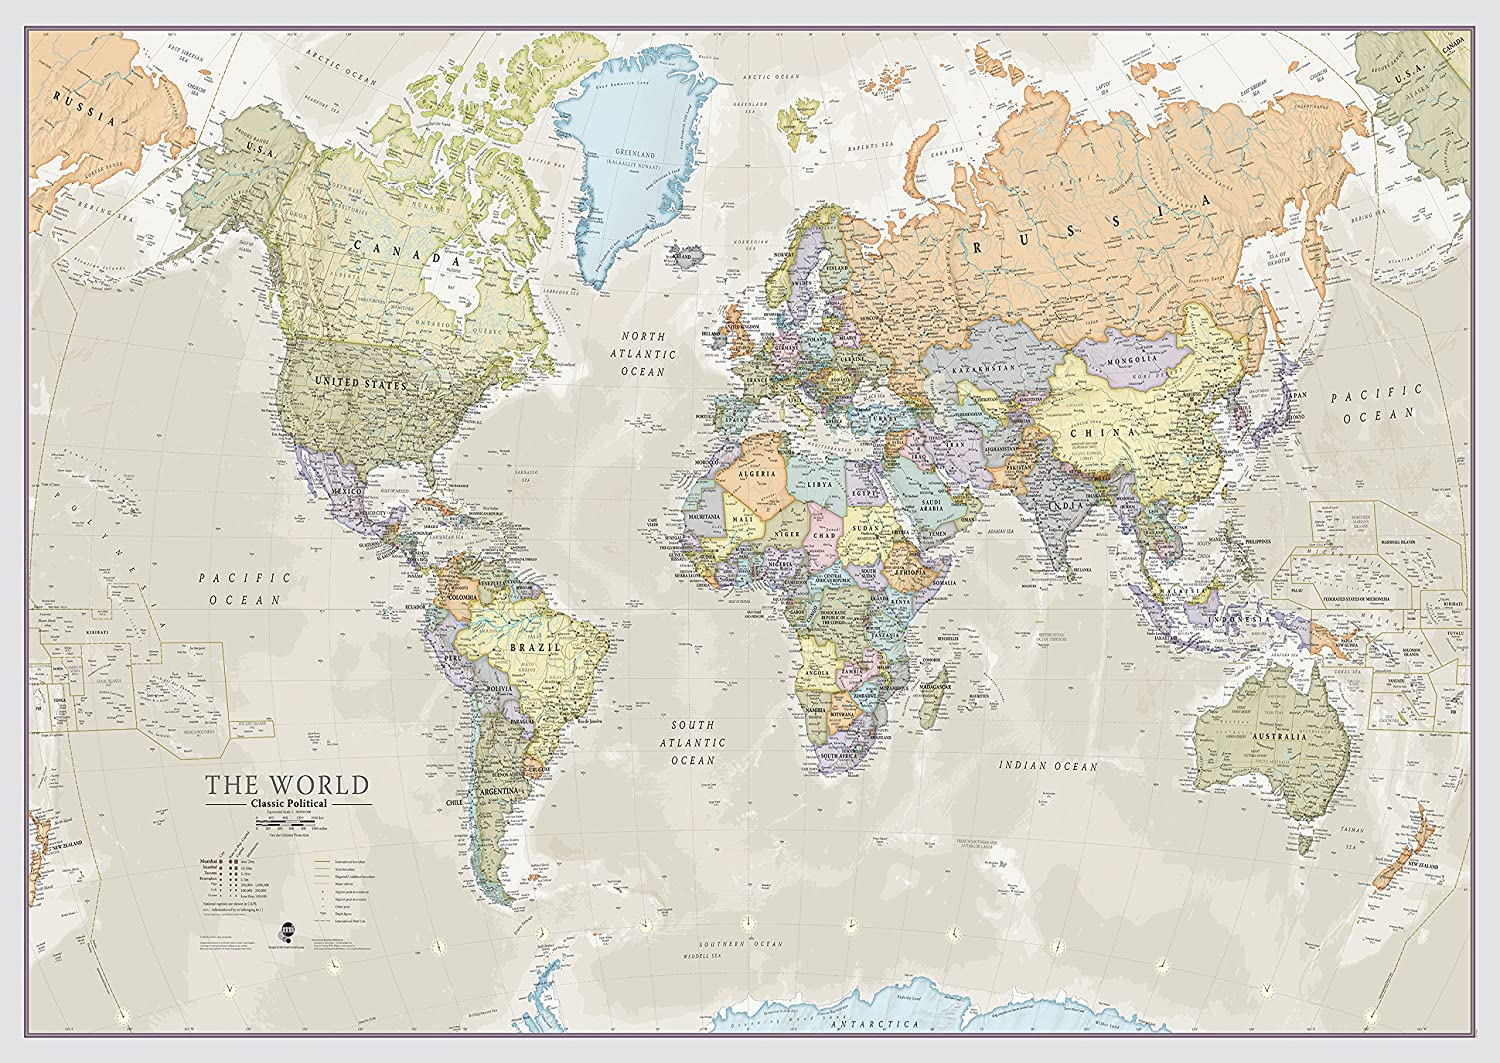 Maps International Classic World Wall Map - Map of The World Poster - Front Lamination - 47 x 33